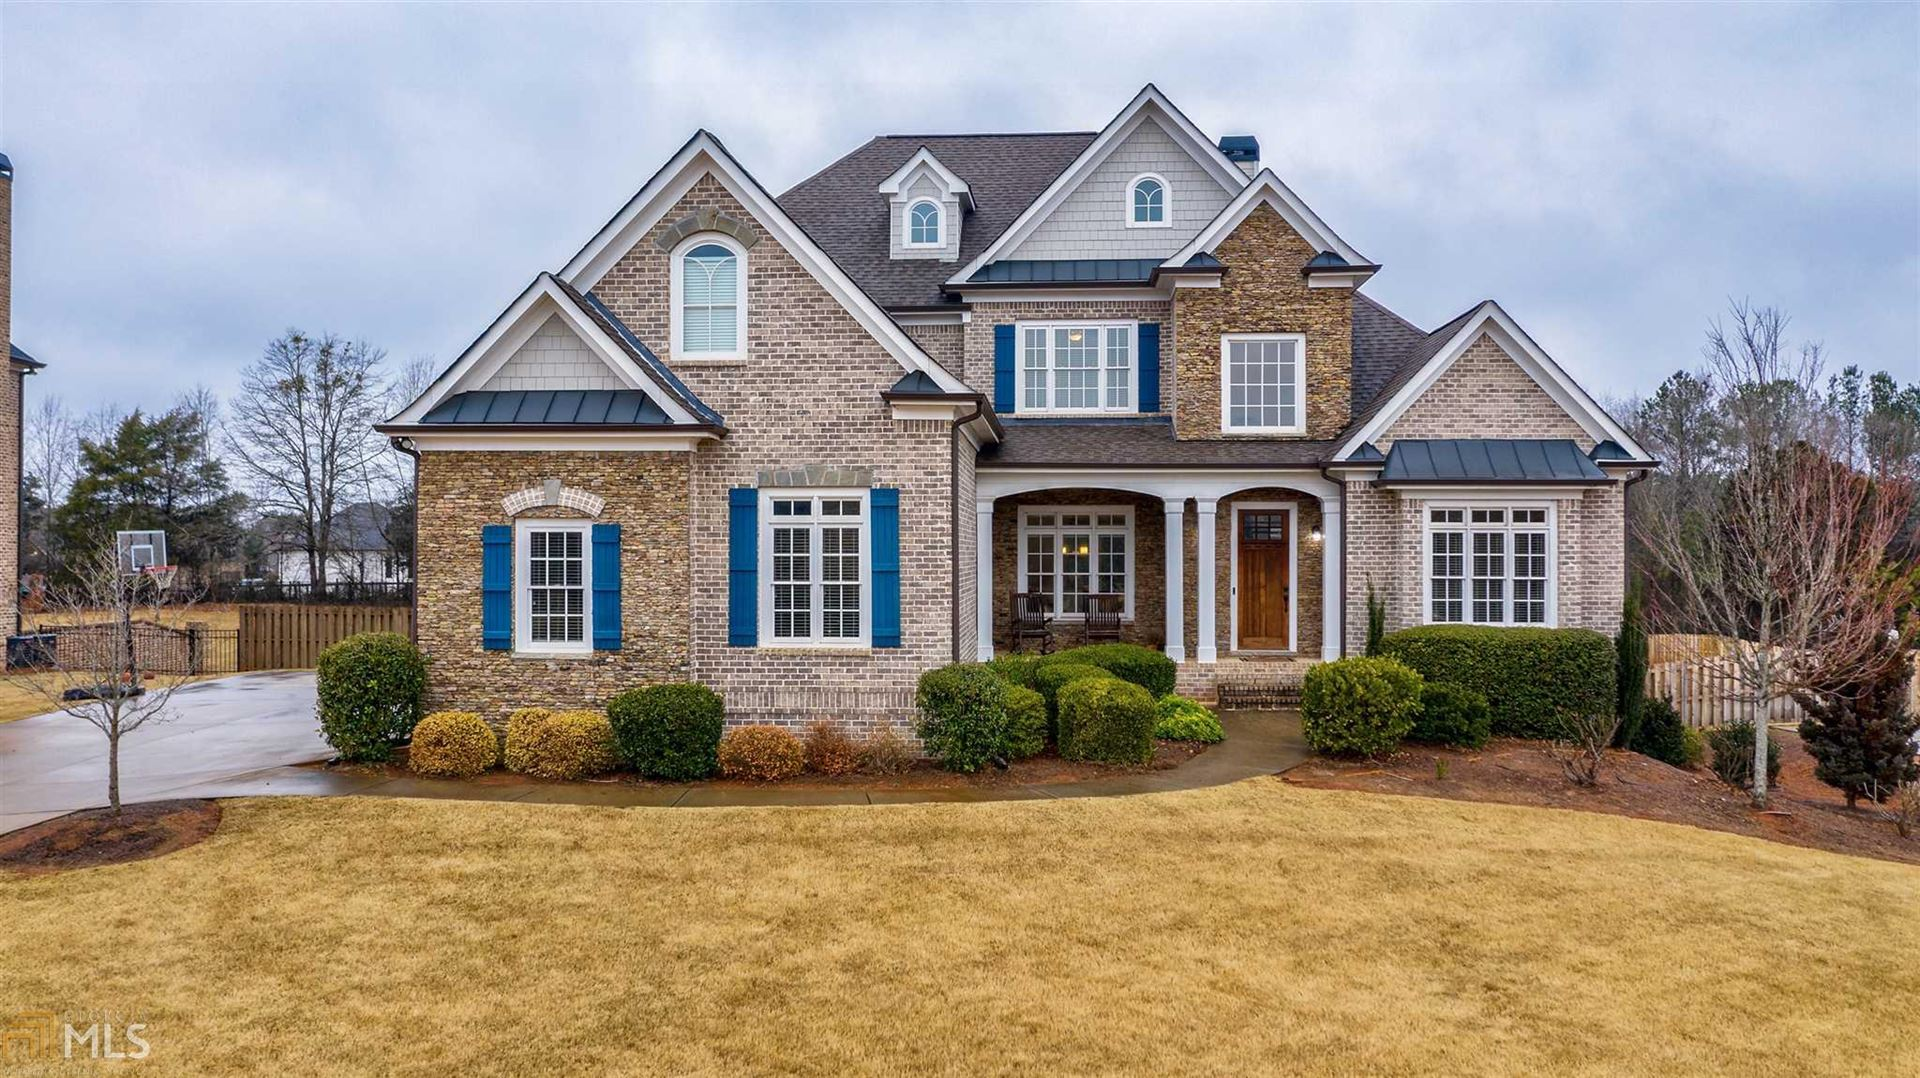 Photo of 1661 Lakewood Manor Dr., Athens, GA 30606 (MLS # 8935931)